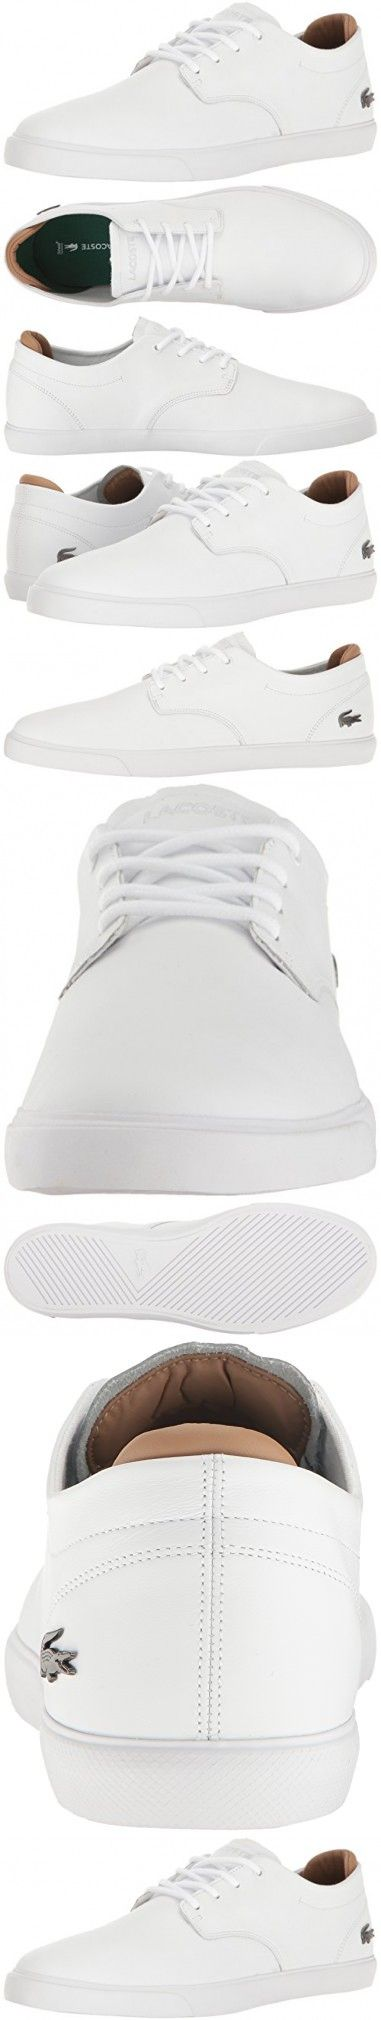 Lacoste Men's Espere 117 1 Casual Shoe Fashion Sneaker, White, 10 M US